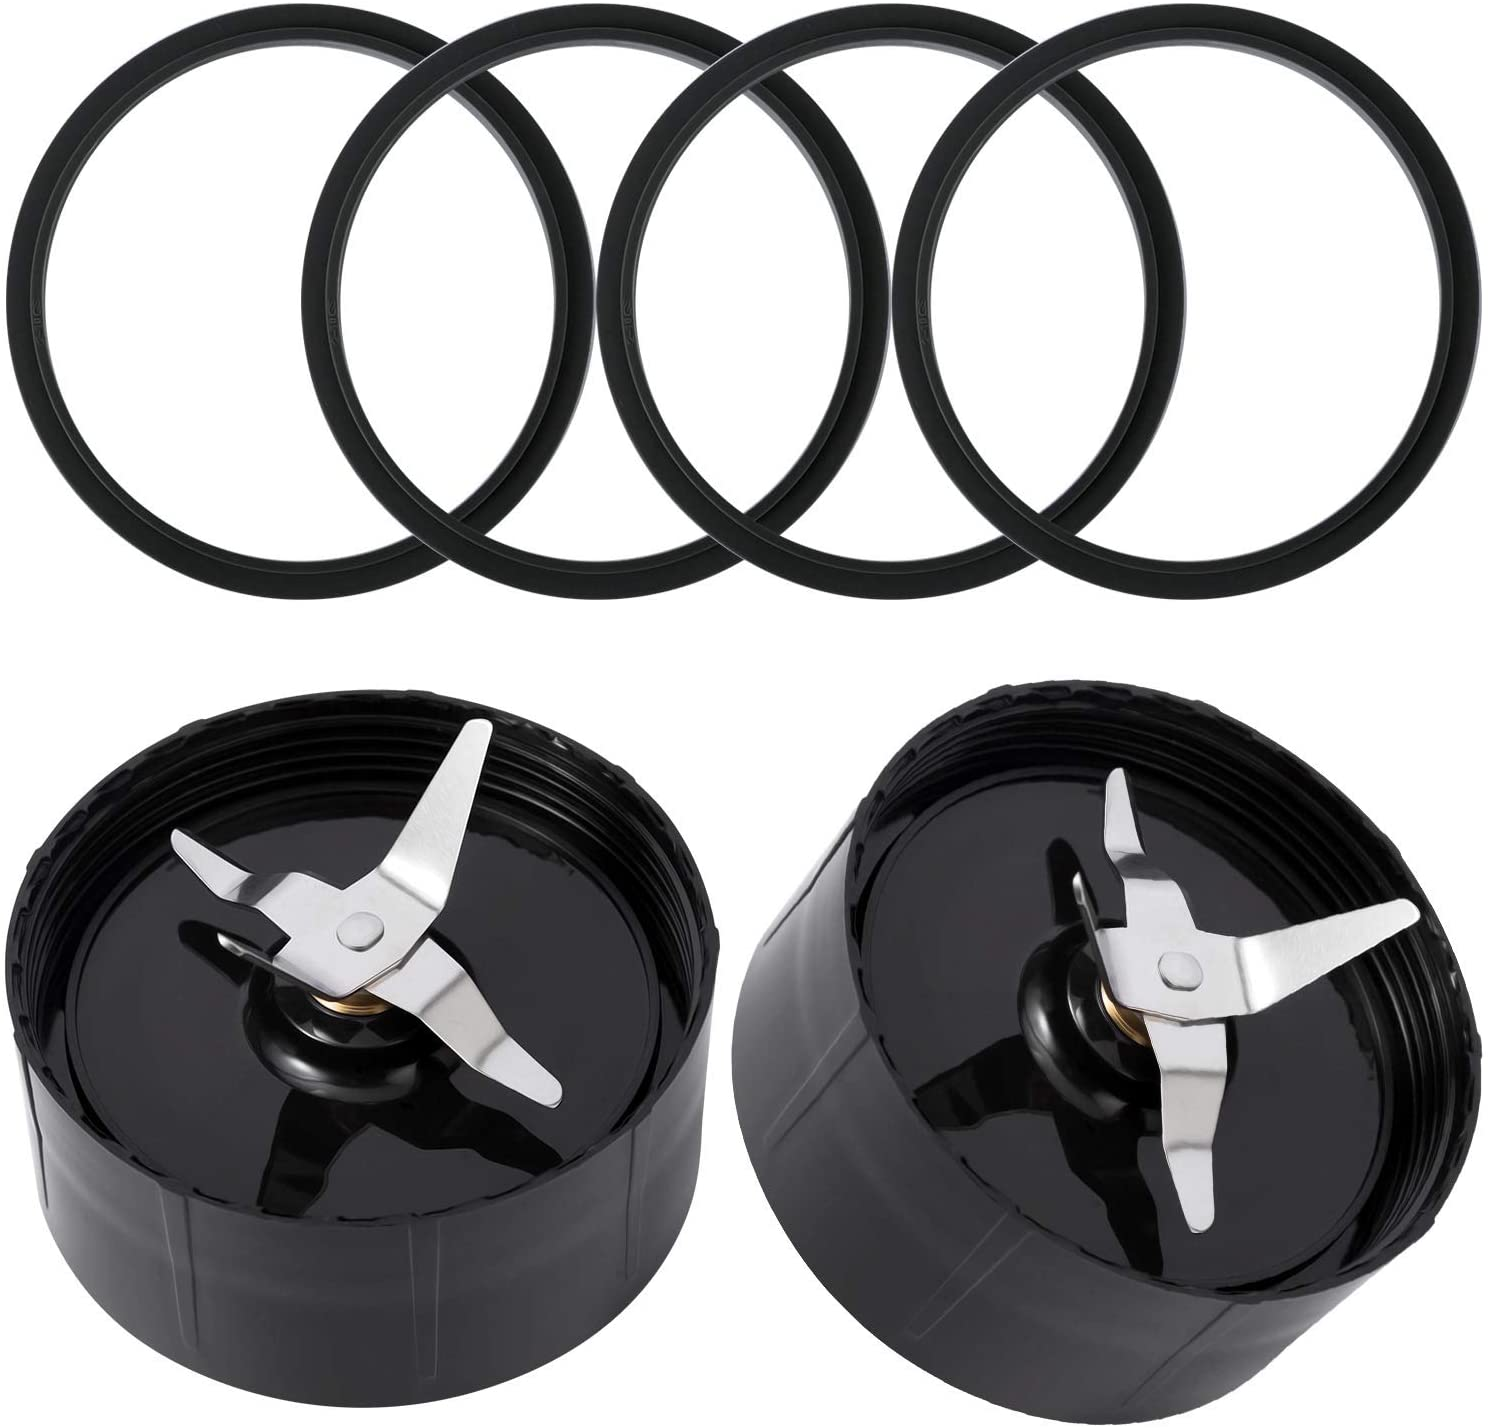 2 Cross Blades with 2 Rubber Gaskets QT Replacement Parts Compatible with 250w Magic Bullet Blender, Juicer and Mixer(Model MB1001)